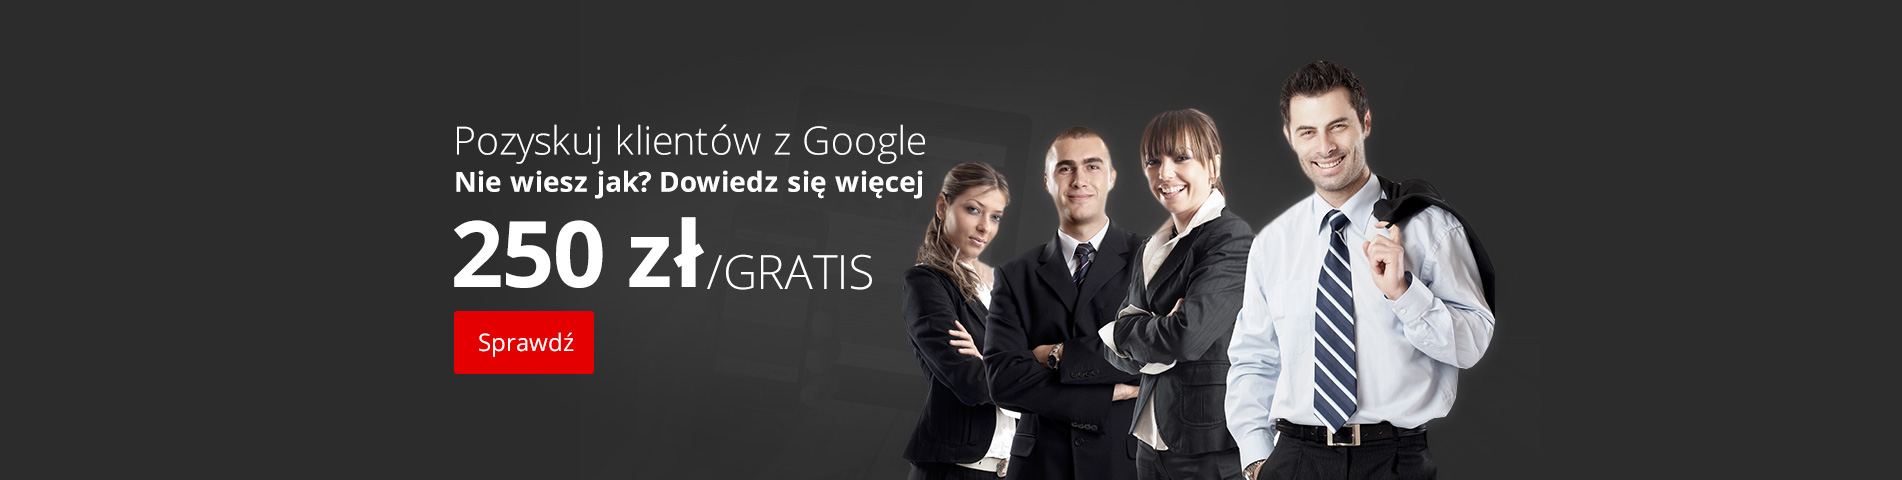 klikisite mobilna strona www adwords kampanie e-marketing